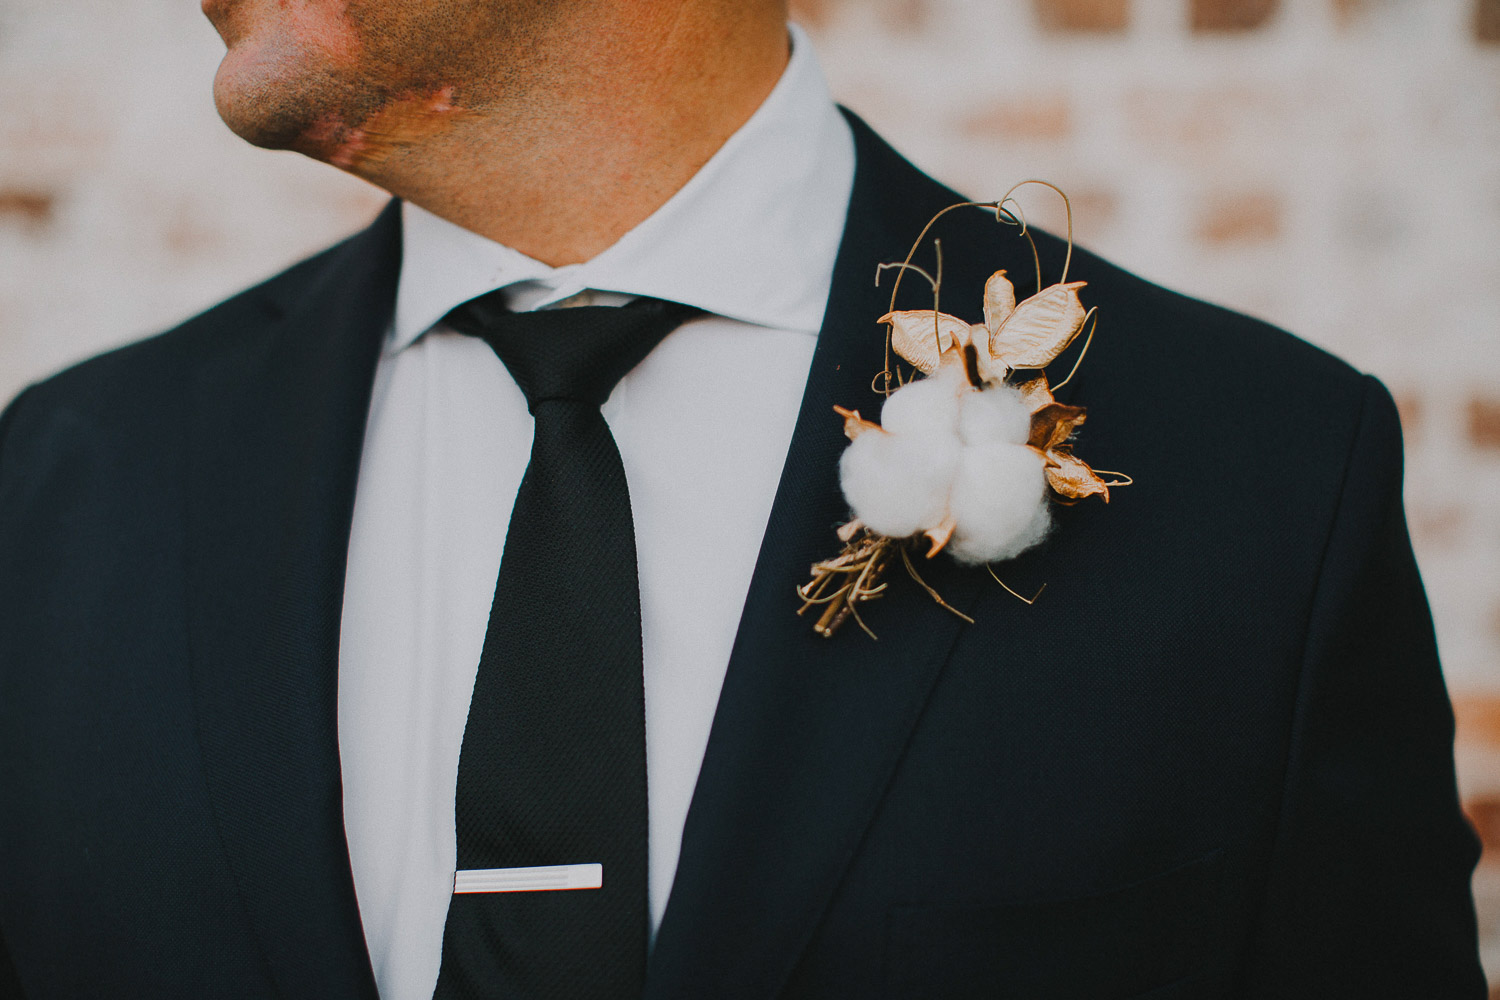 Creative groom buttonhole ideas